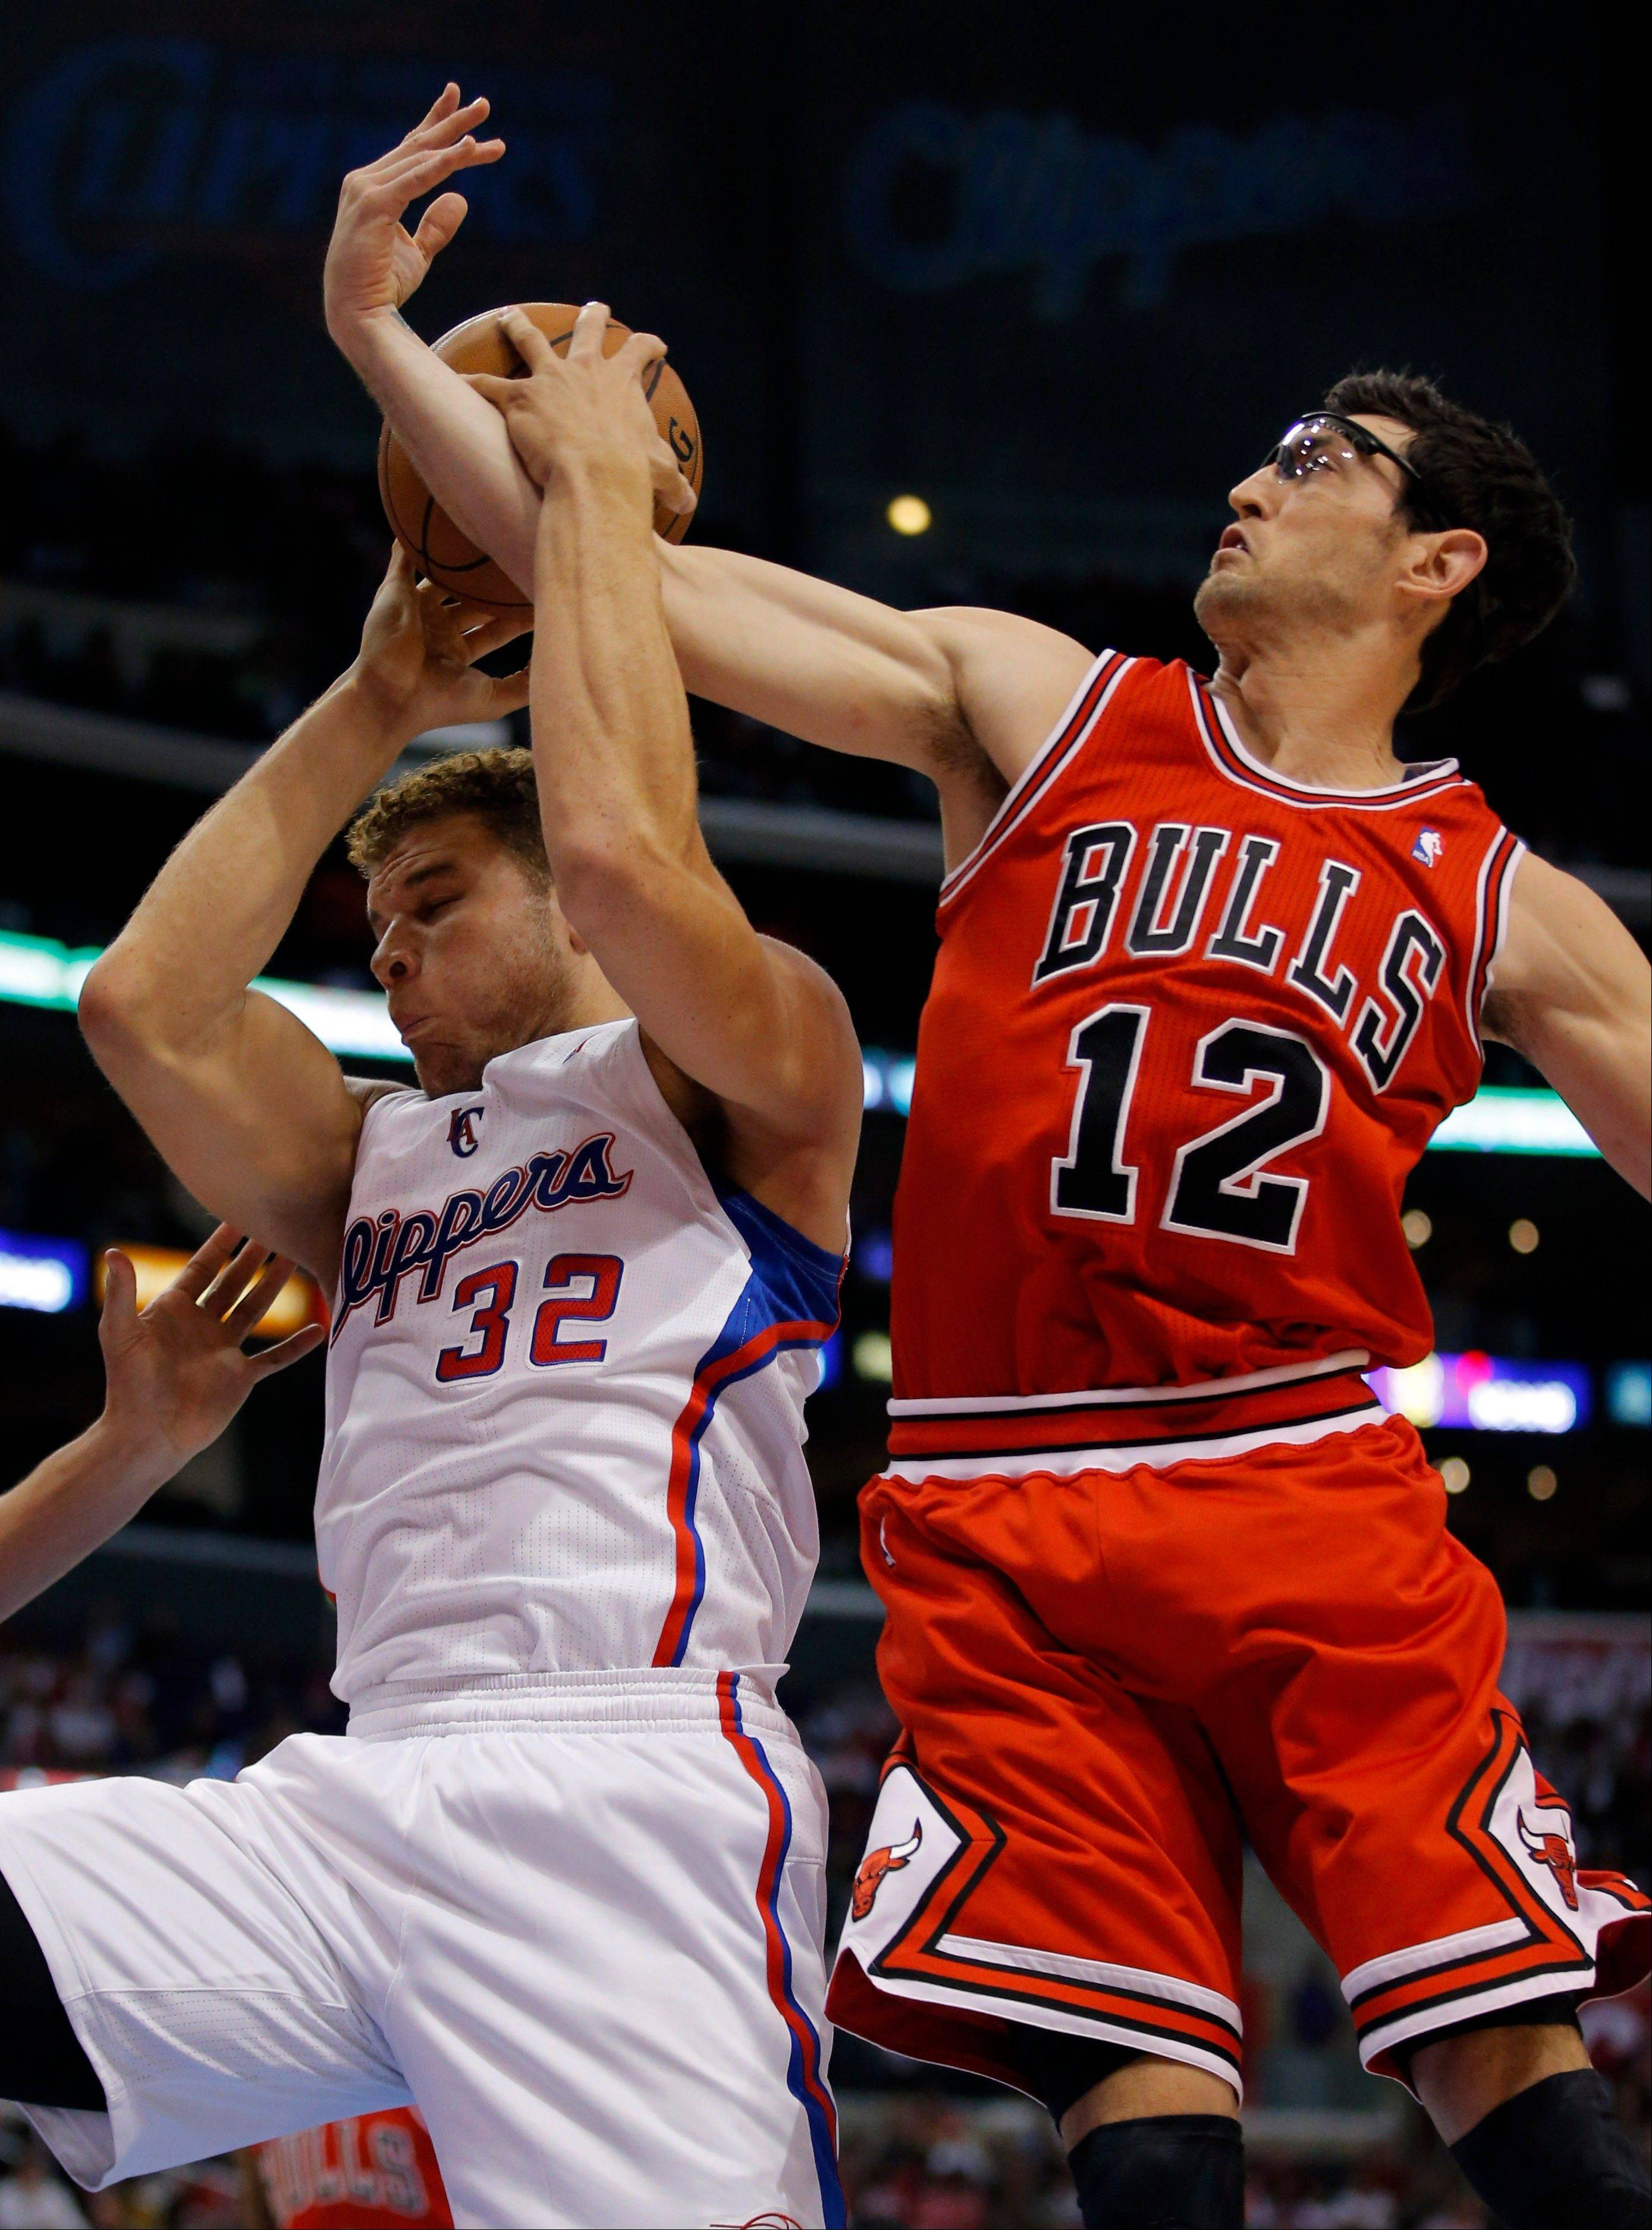 The Clippers' Blake Griffin gets a rebound in front of the Bulls' Kirk Hinrich in a game last week.